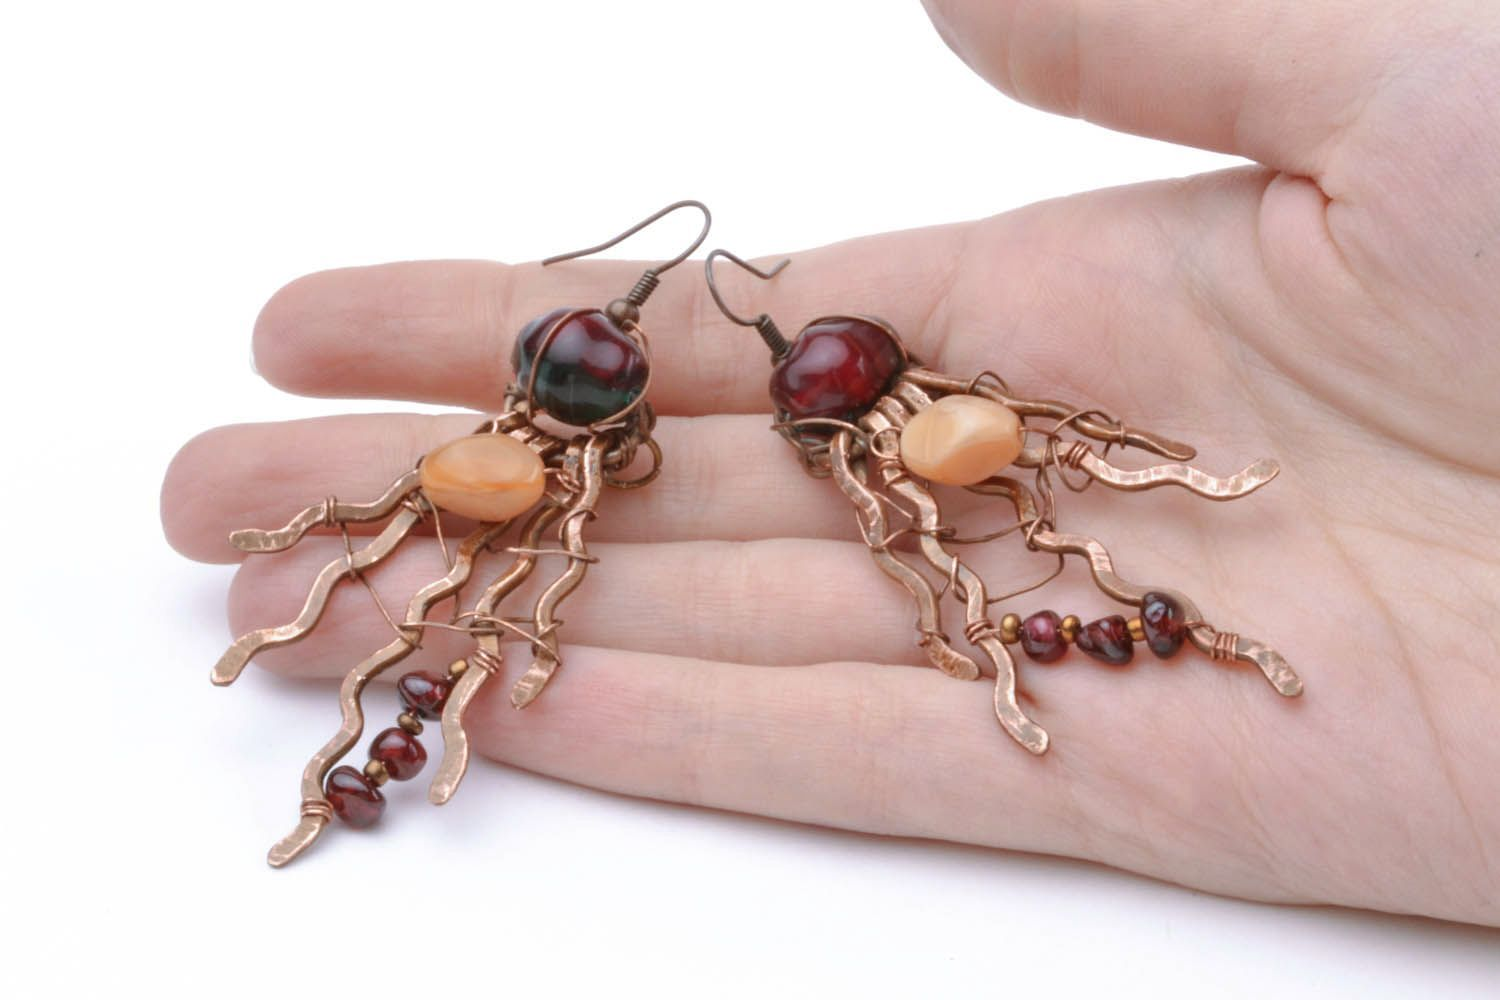 Copper earrings with natural stones photo 2